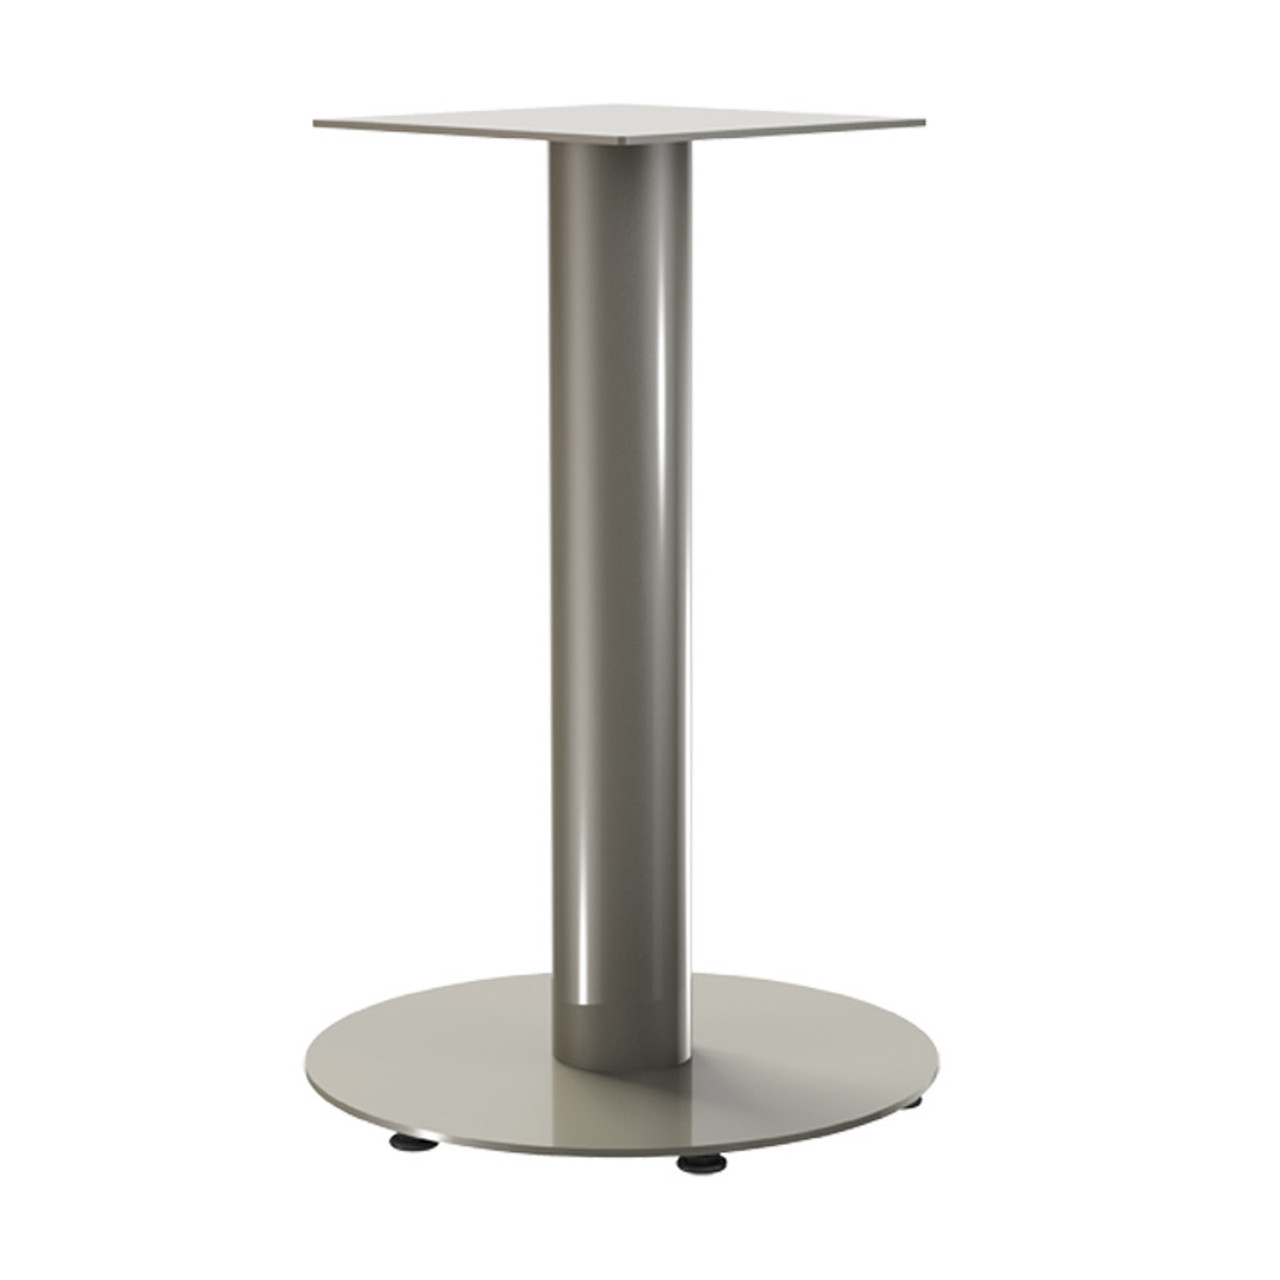 """Round Pedestal Base, 27-3/4"""" Height, 18"""" Base Diameter, 4"""" diameter Column, with welded mounting plate and levelers - Replacementtablelegs.com"""